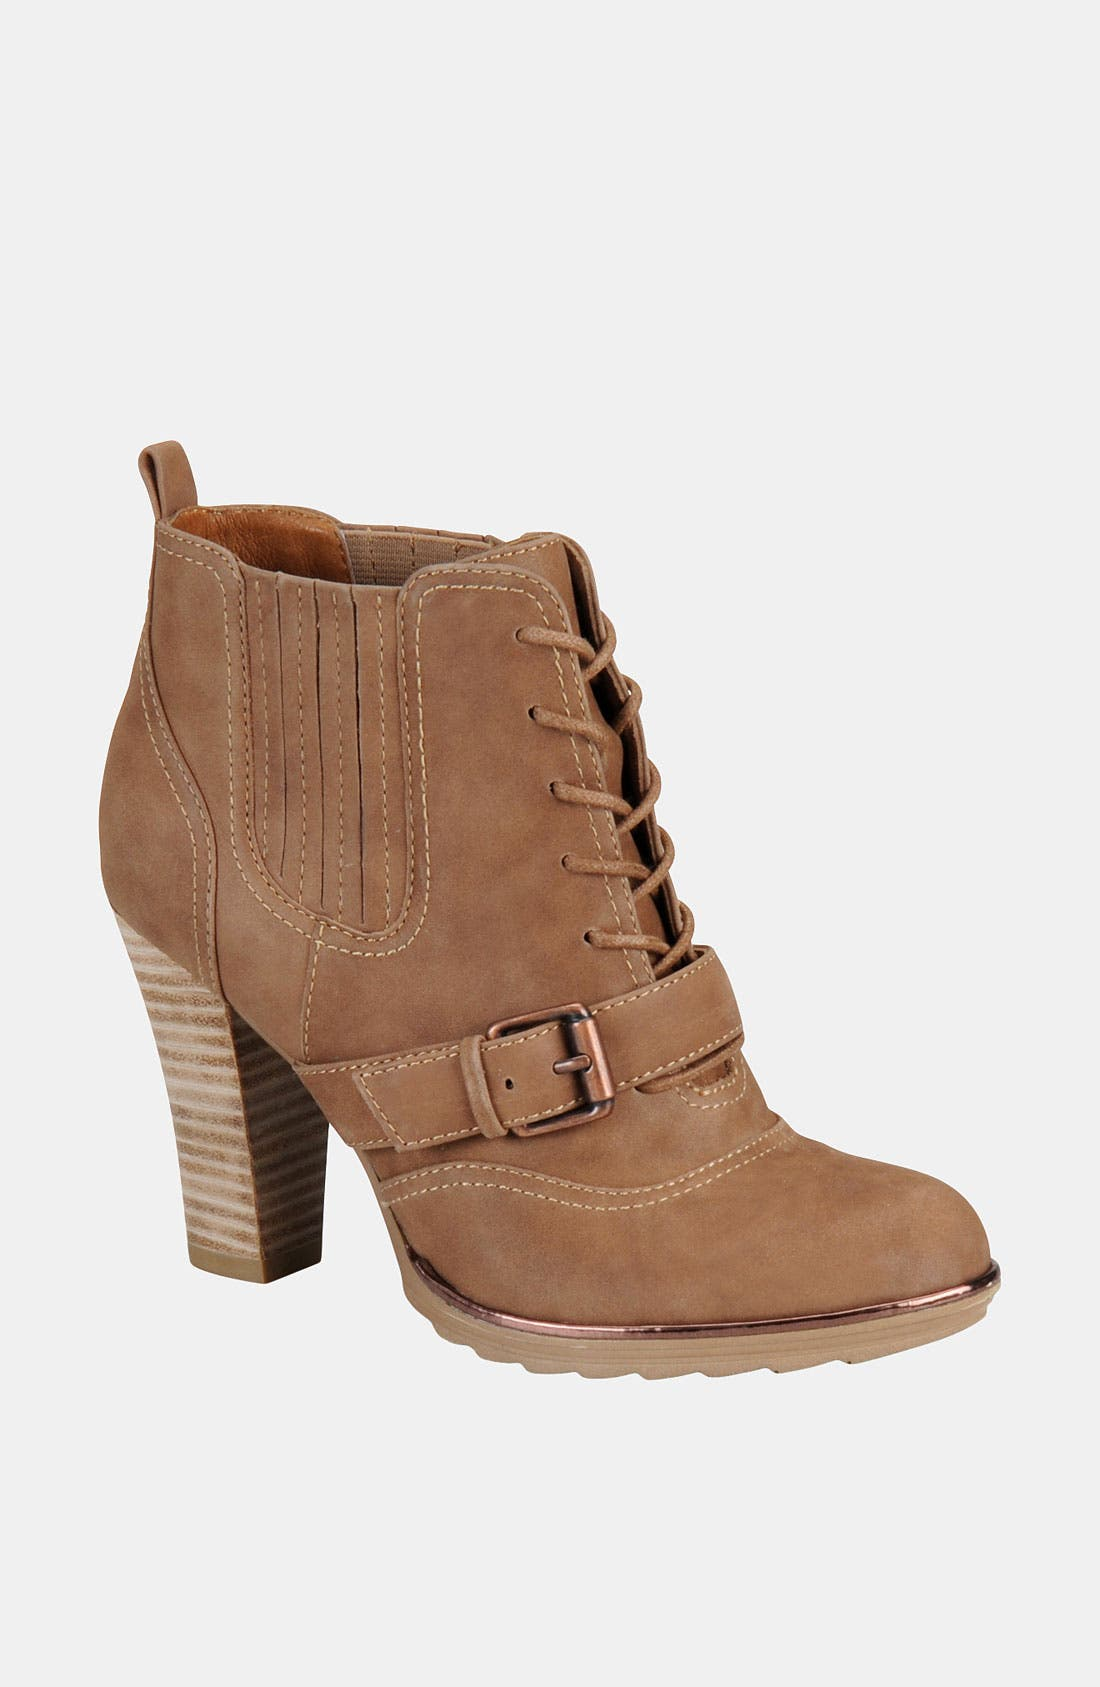 Main Image - Söfft 'Windsor' Military Bootie